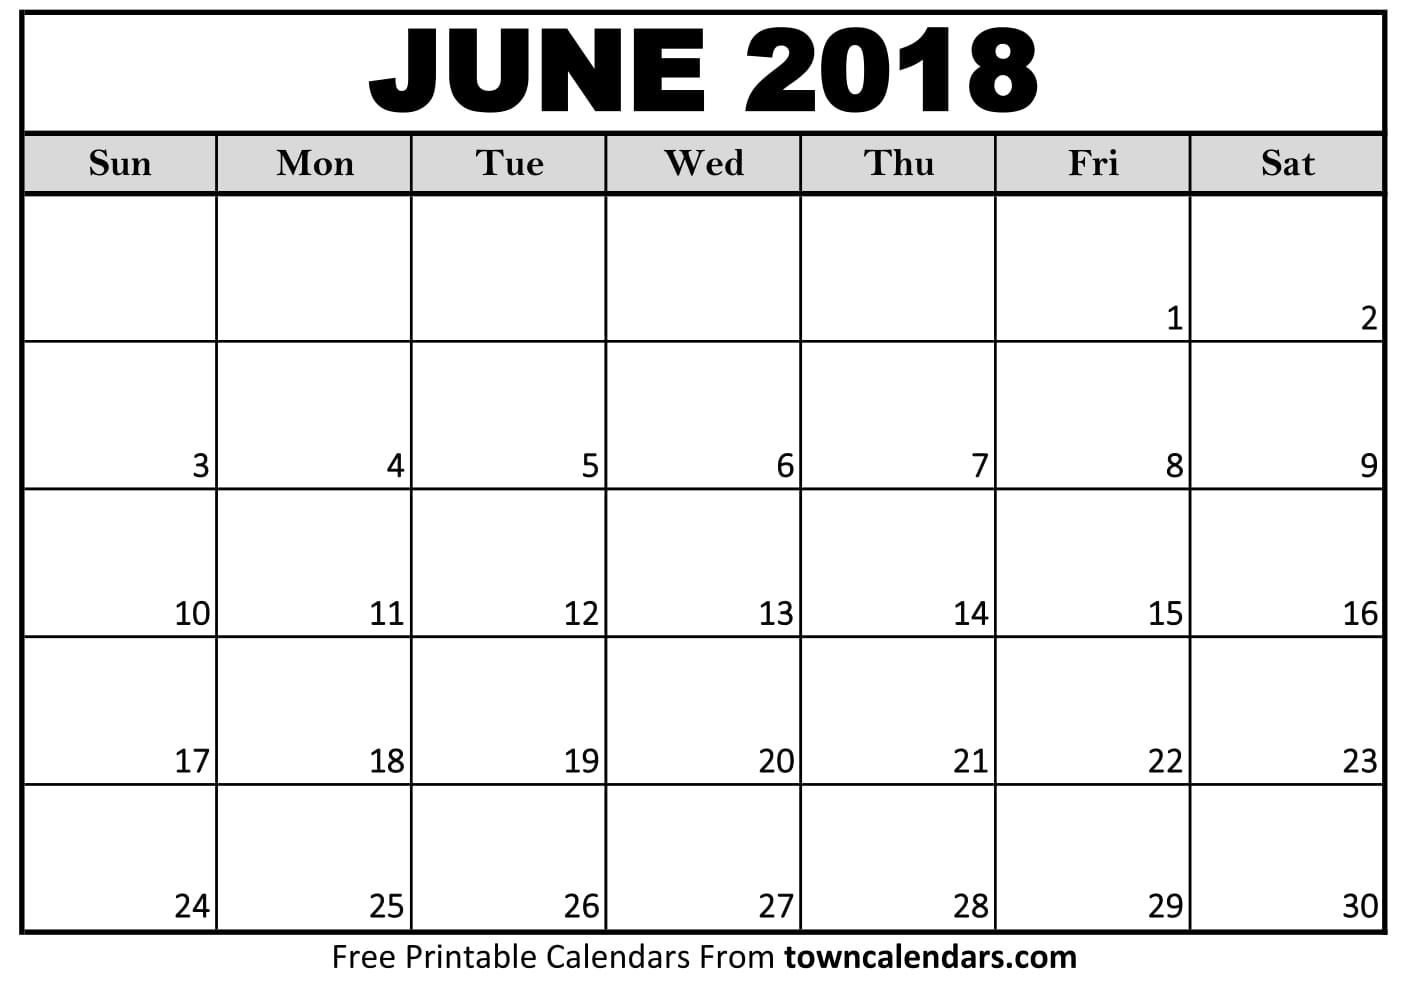 free 5 june 2018 calendar printable template source template. Black Bedroom Furniture Sets. Home Design Ideas